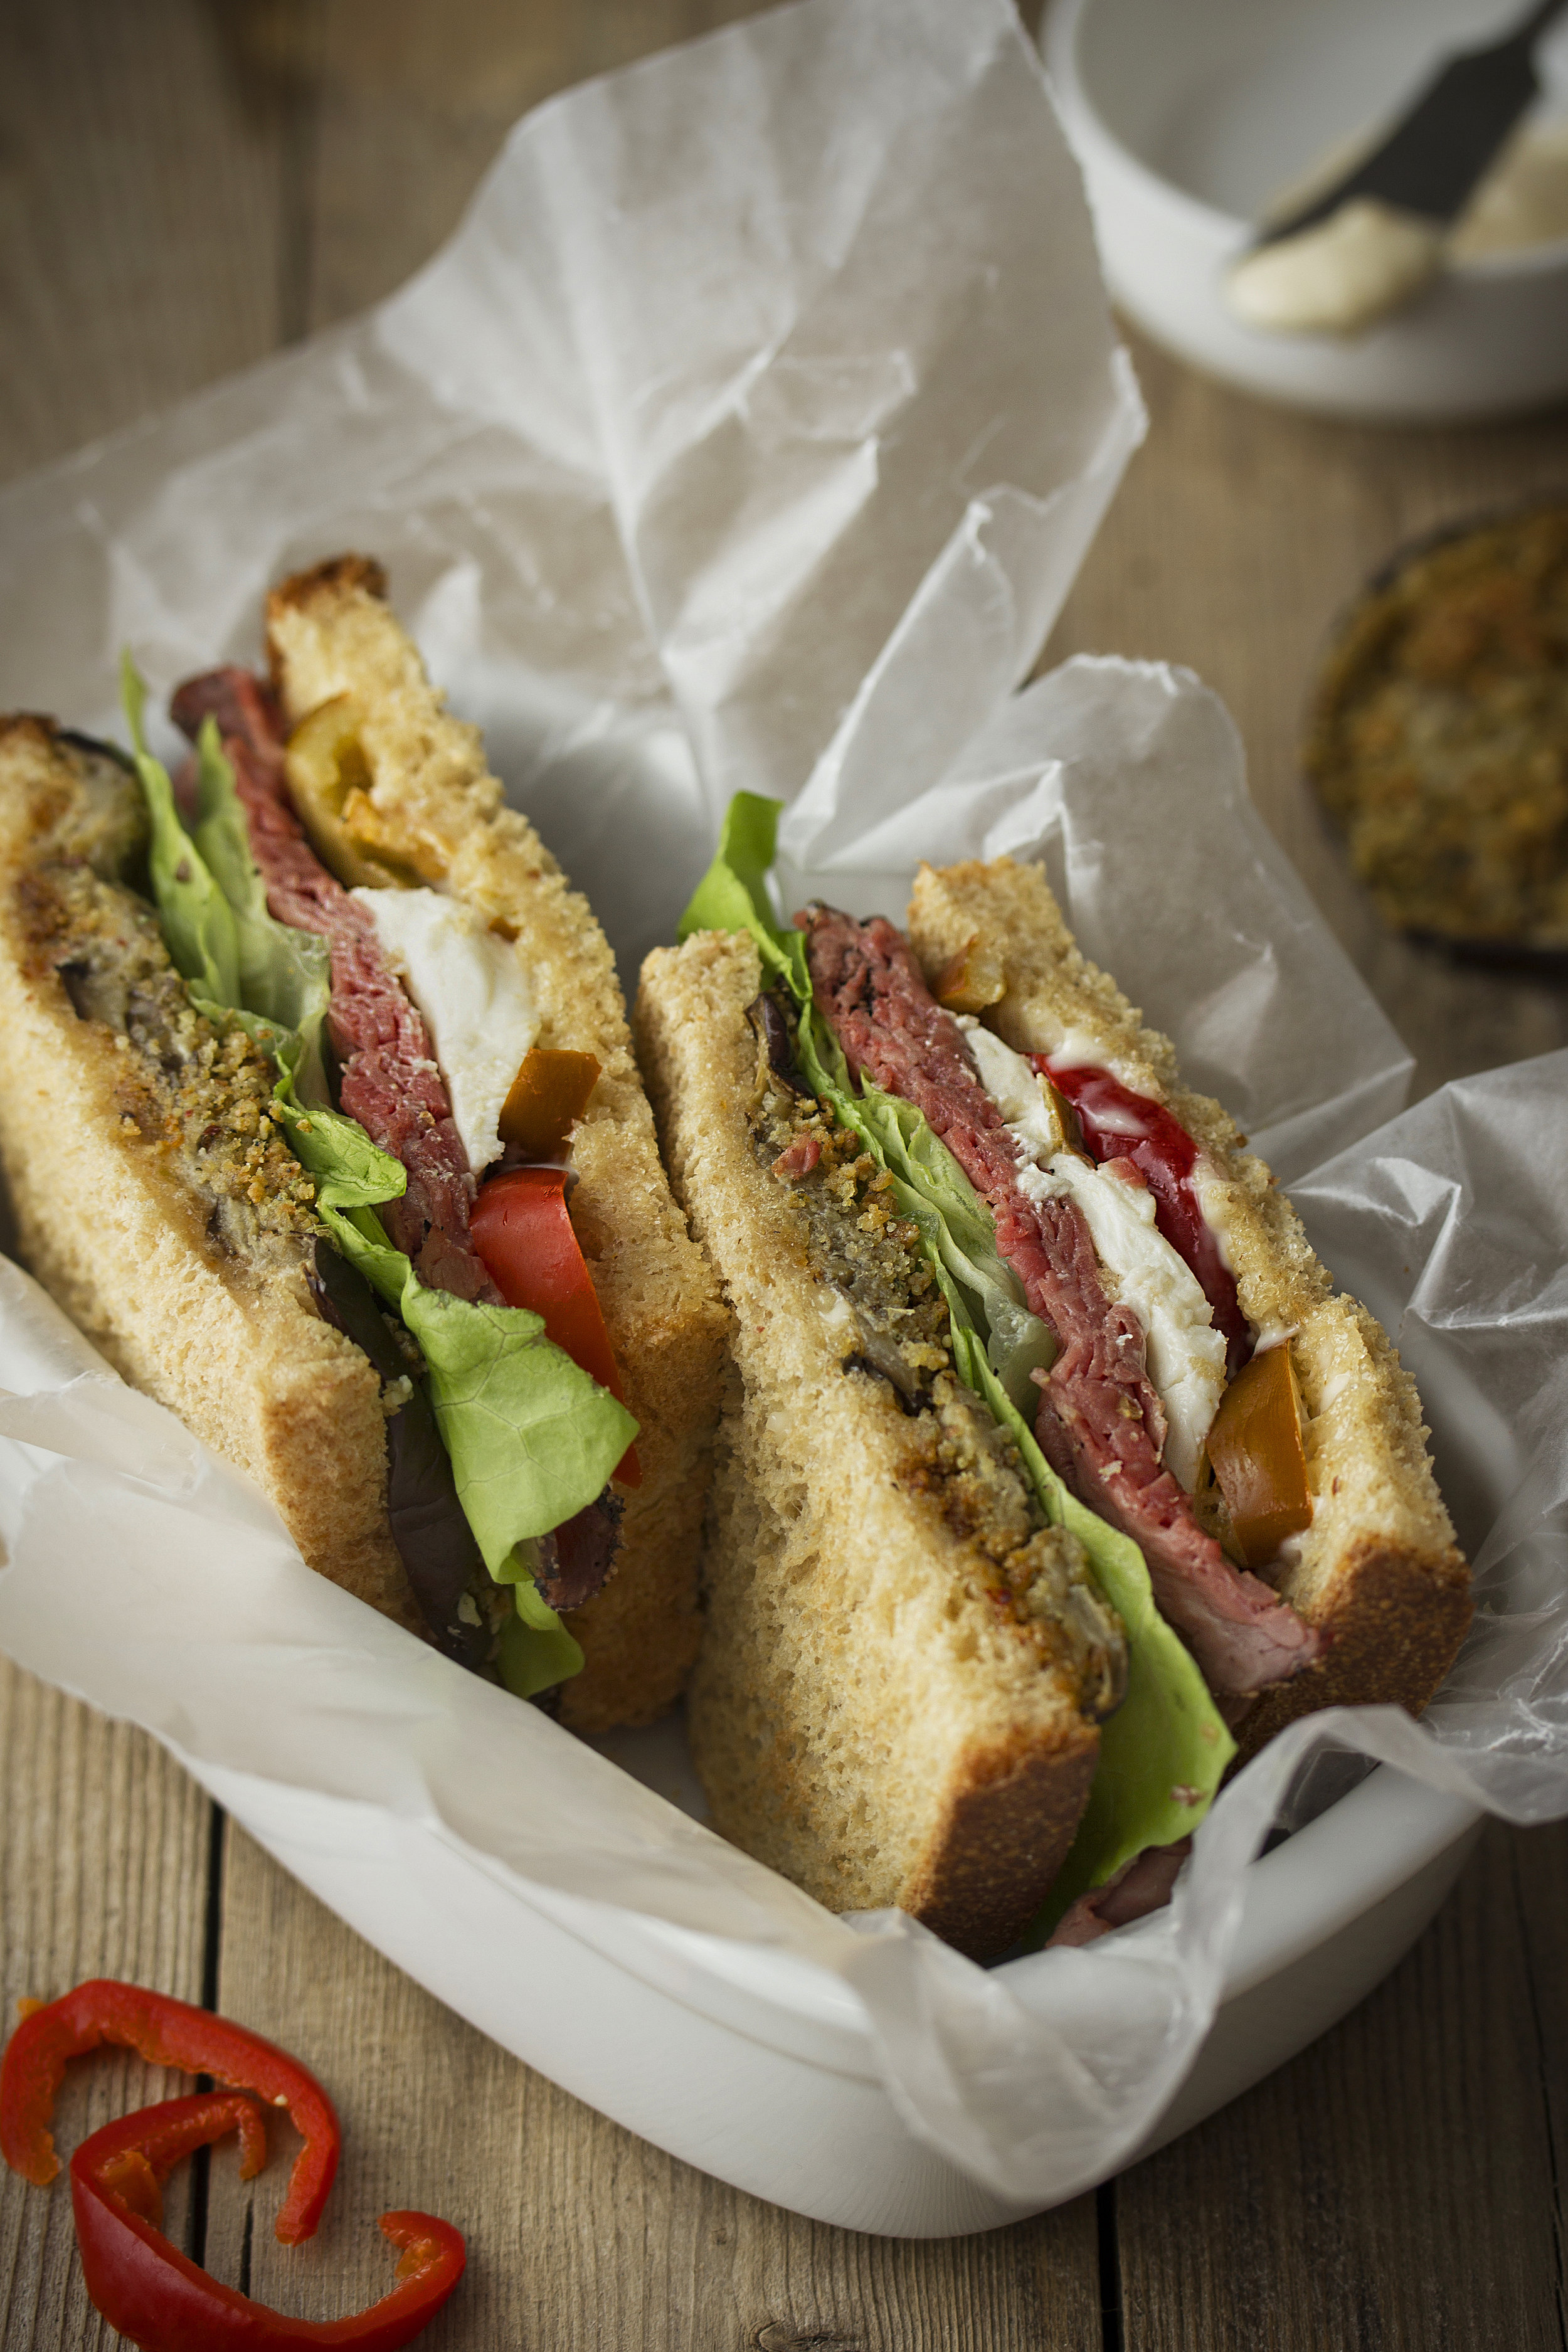 Spicy Roast Beef Sandwich with Breaded Eggplant, Mozzarella and Cherry Peppers